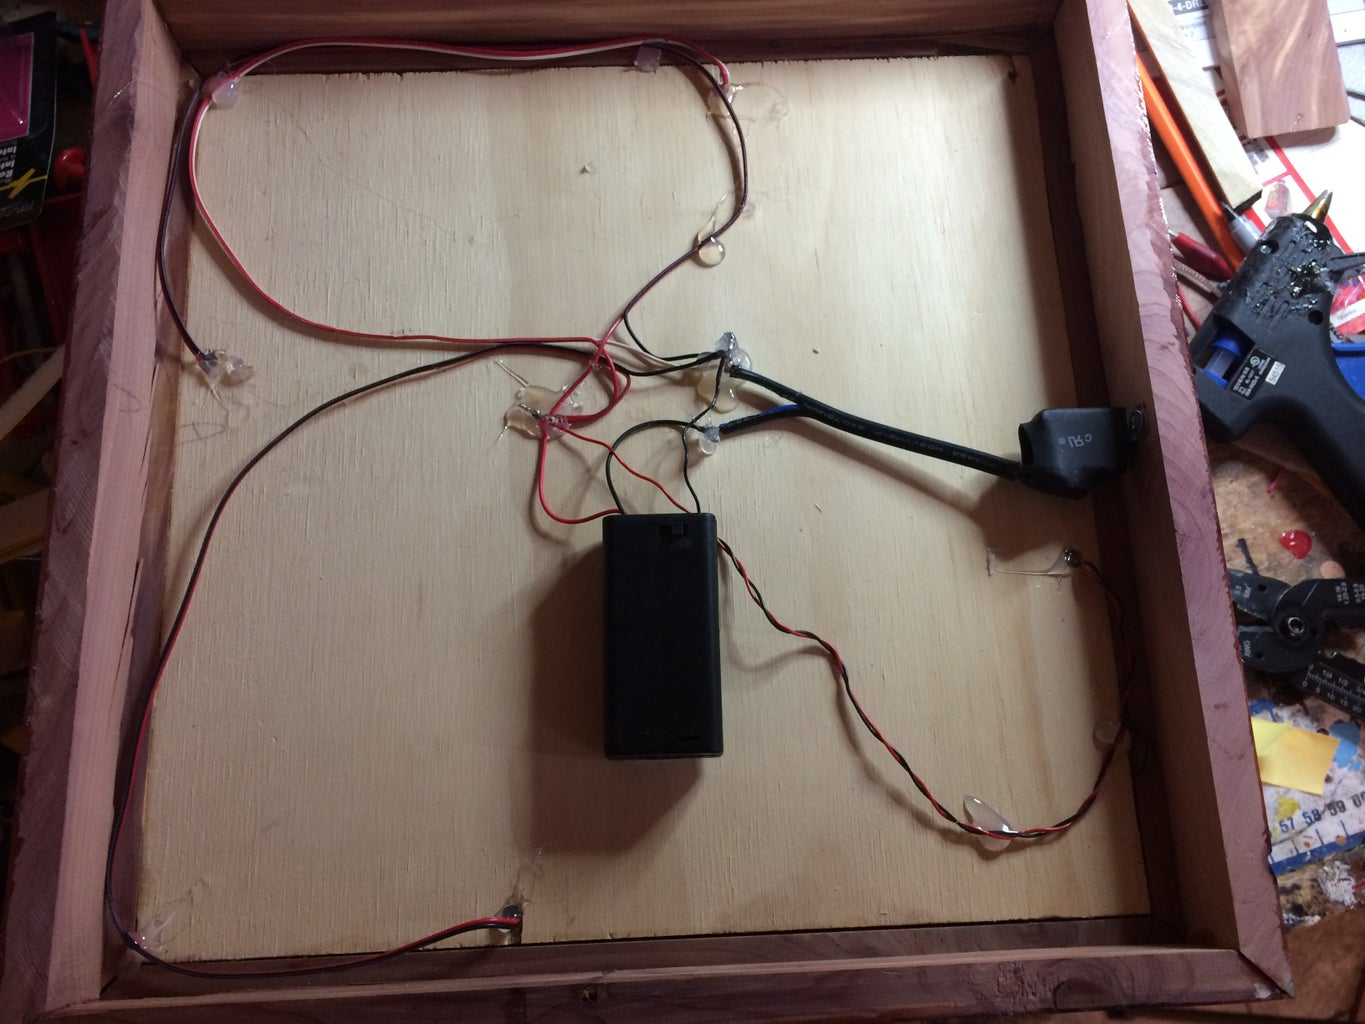 Wiring Things Up